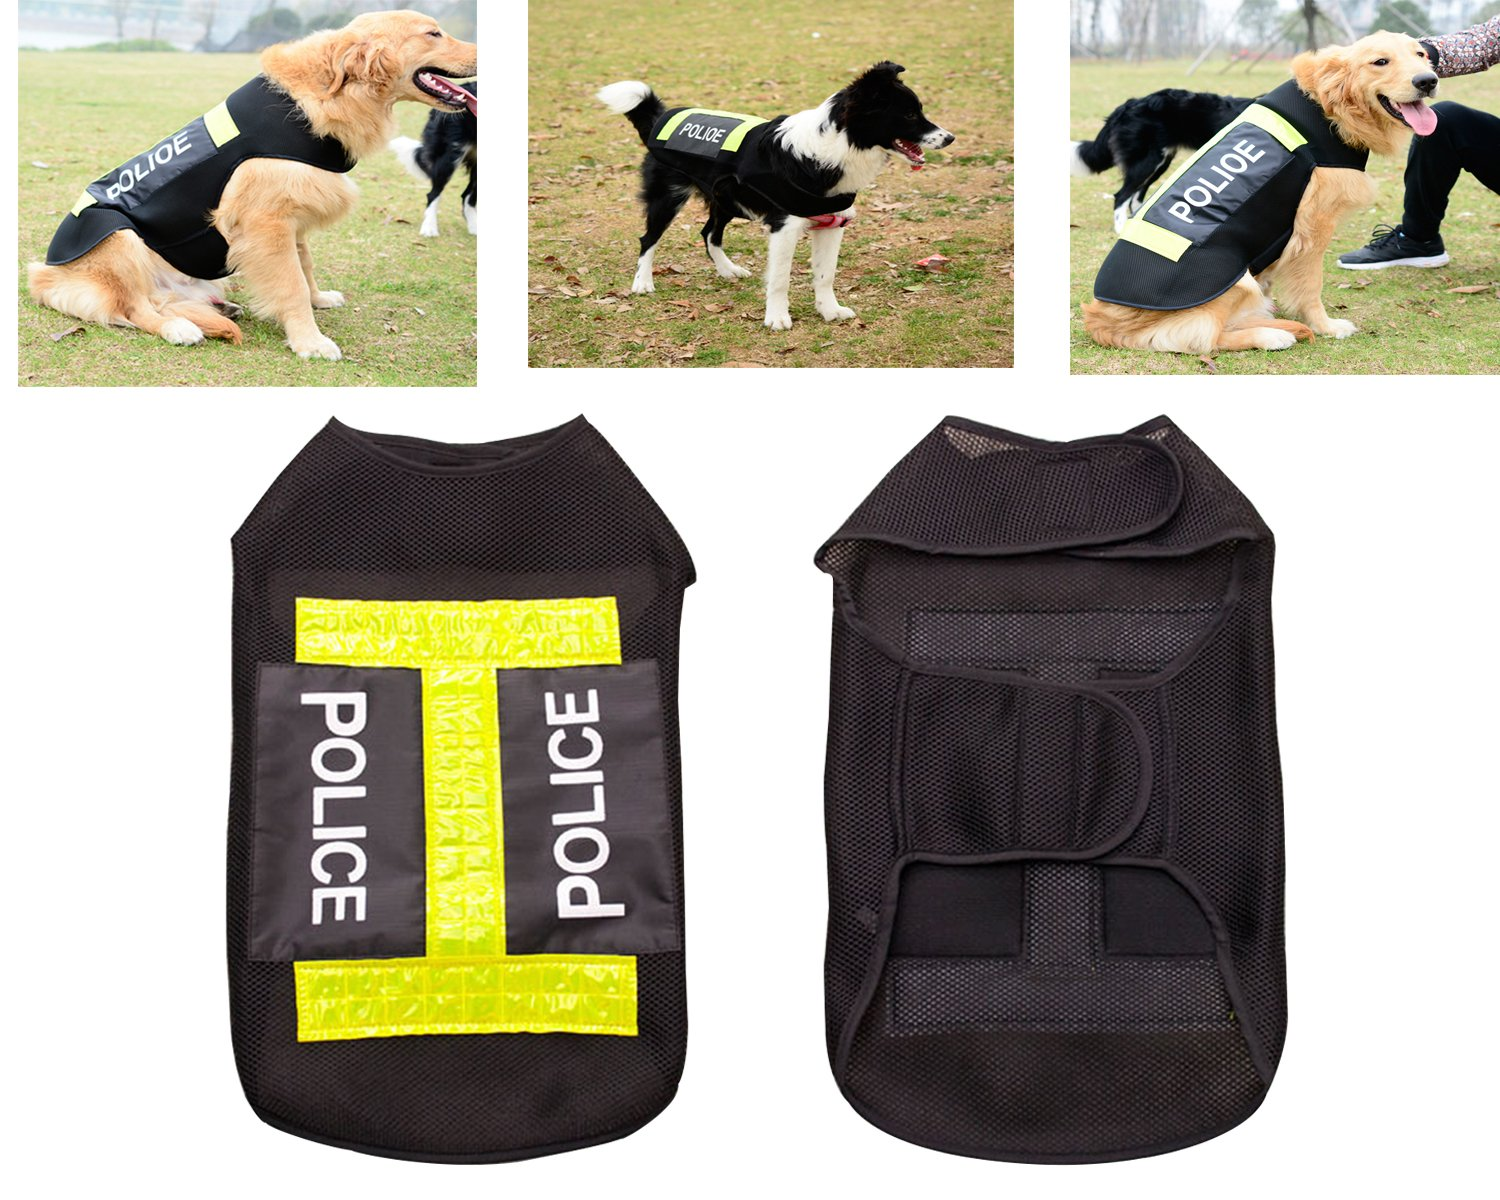 Guard Dog Vest Police Costume Training Pants Jacket Hoodie Clothing Accessories